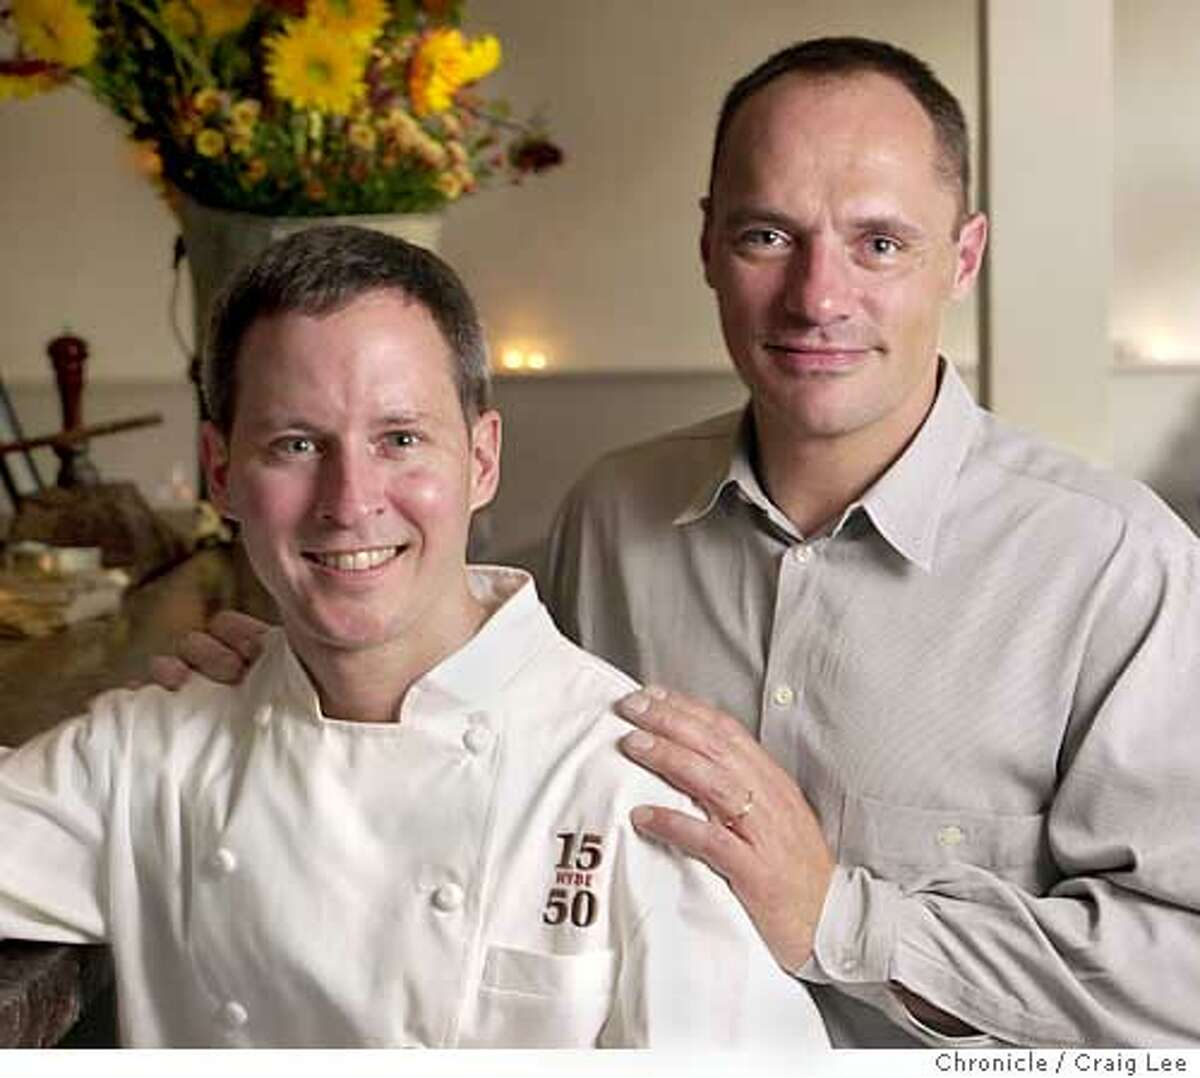 A new restaurant in San Francisco called 1550 Hyde, which is it's address near the corner of Pacific Avenue. Photo of owners/partners, Peter Erickson (left), who is the chef, and Kent Liggett (right). CRAIG LEE / The Chronicle